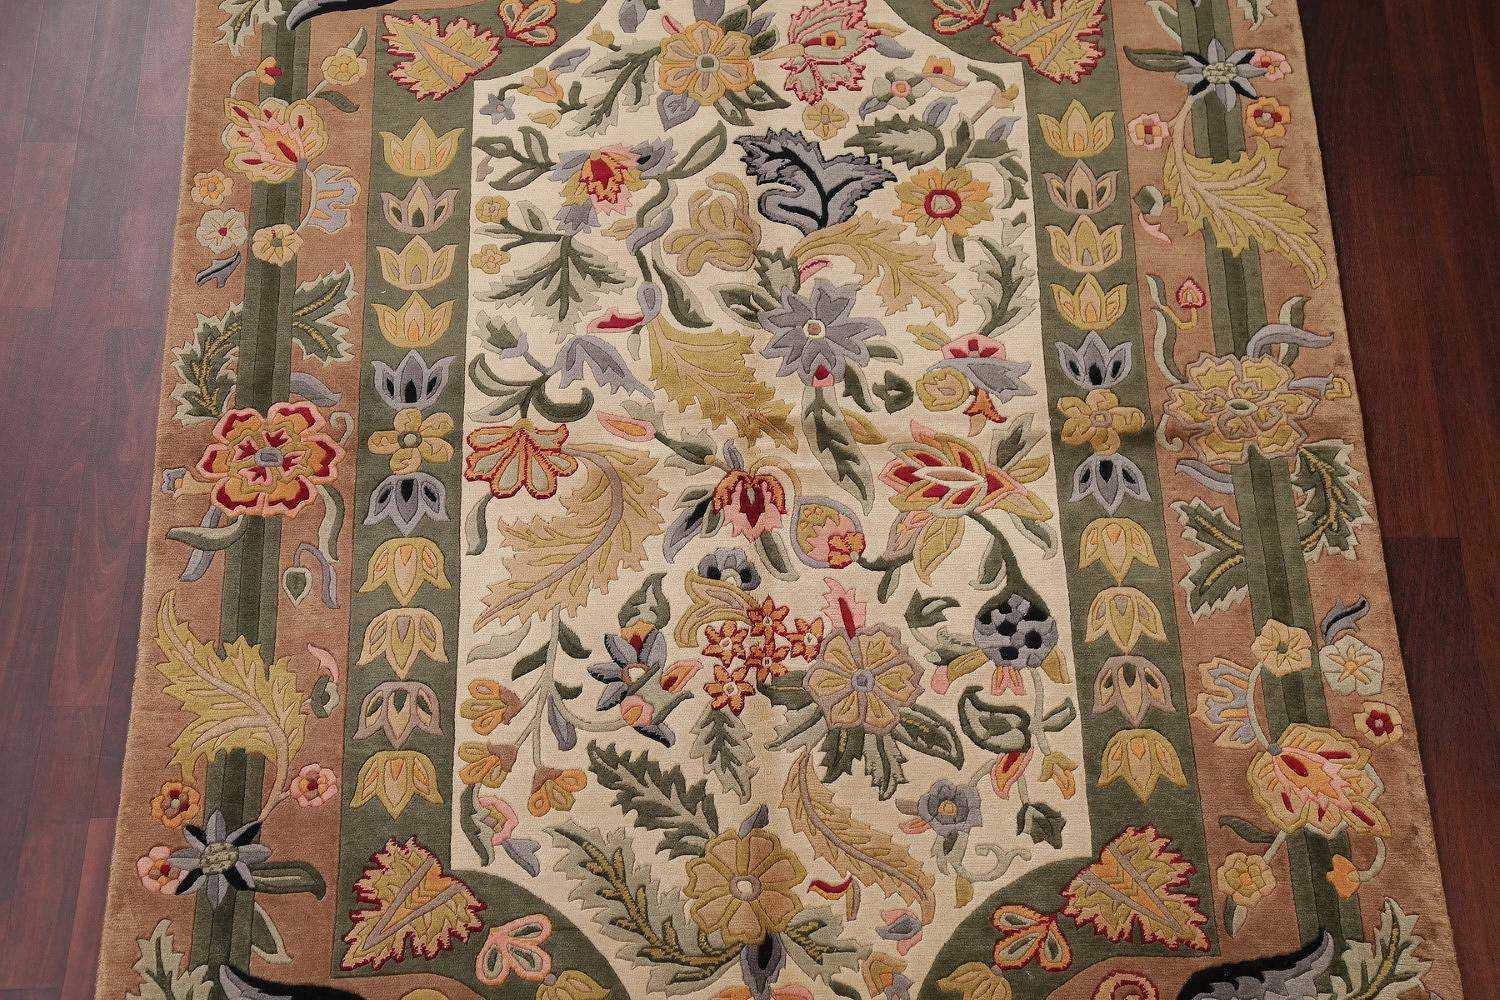 Floral Ivory Nepal Tibetan Oriental Hand-Knotted Area Rug Wool 6x9